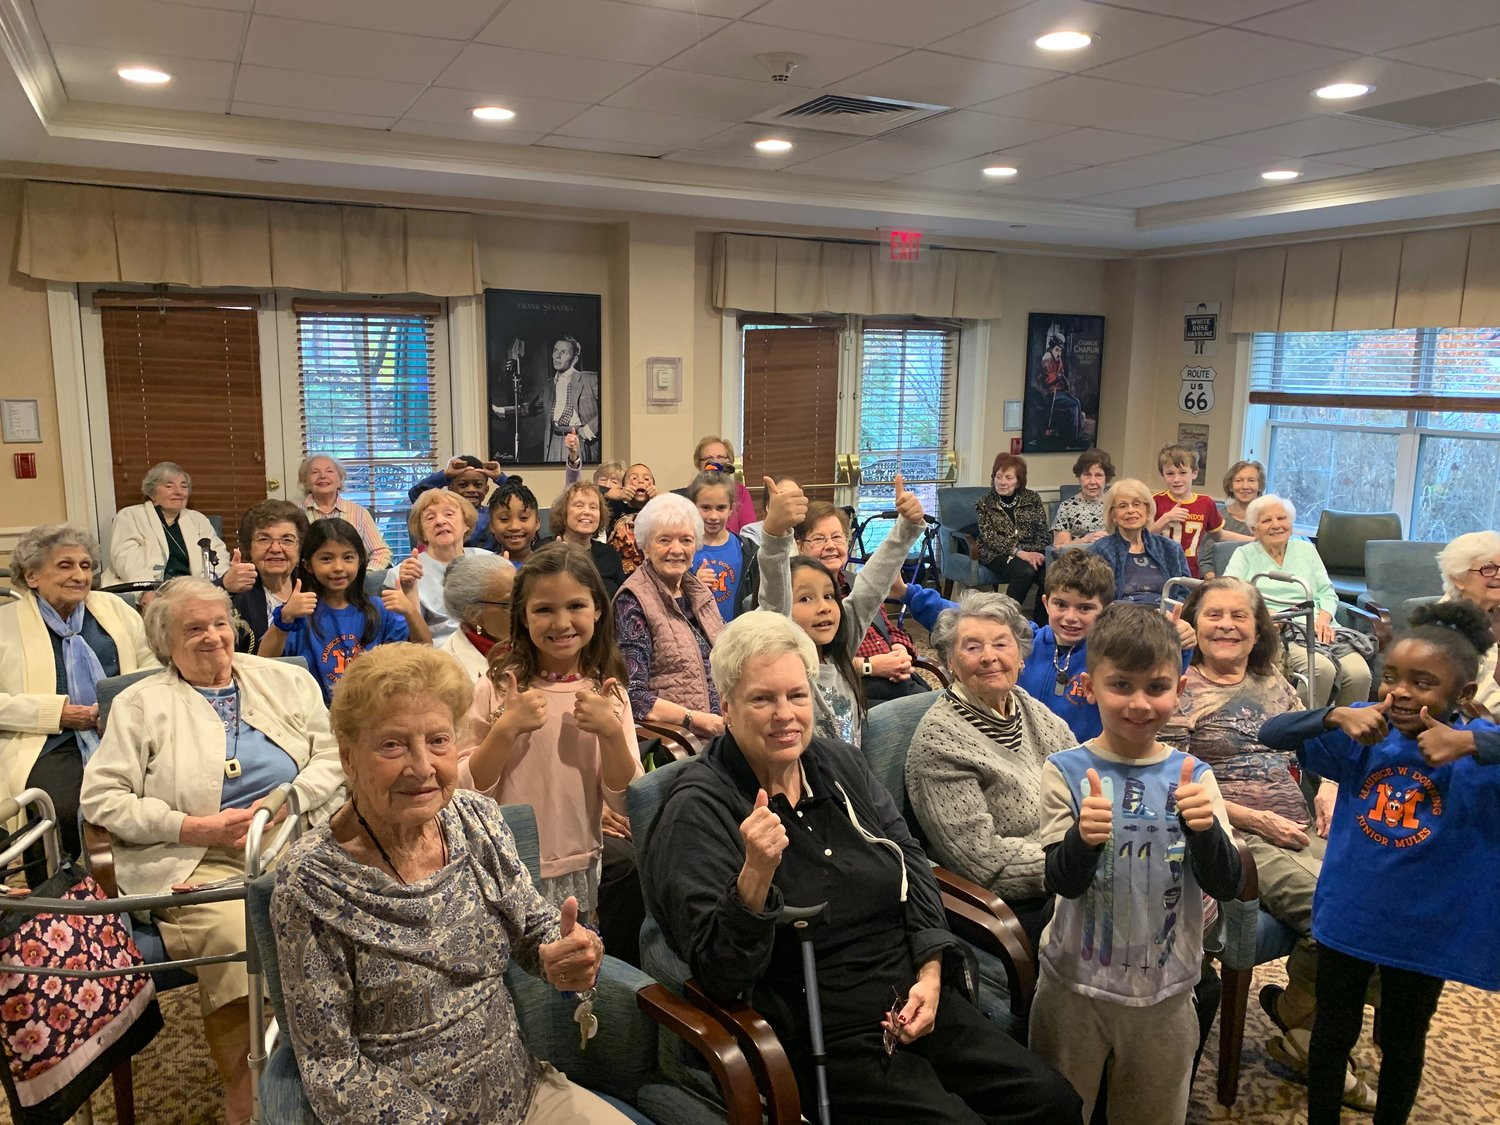 Students and senior citizens gave a thumbs up at Atria's Assisted Living.